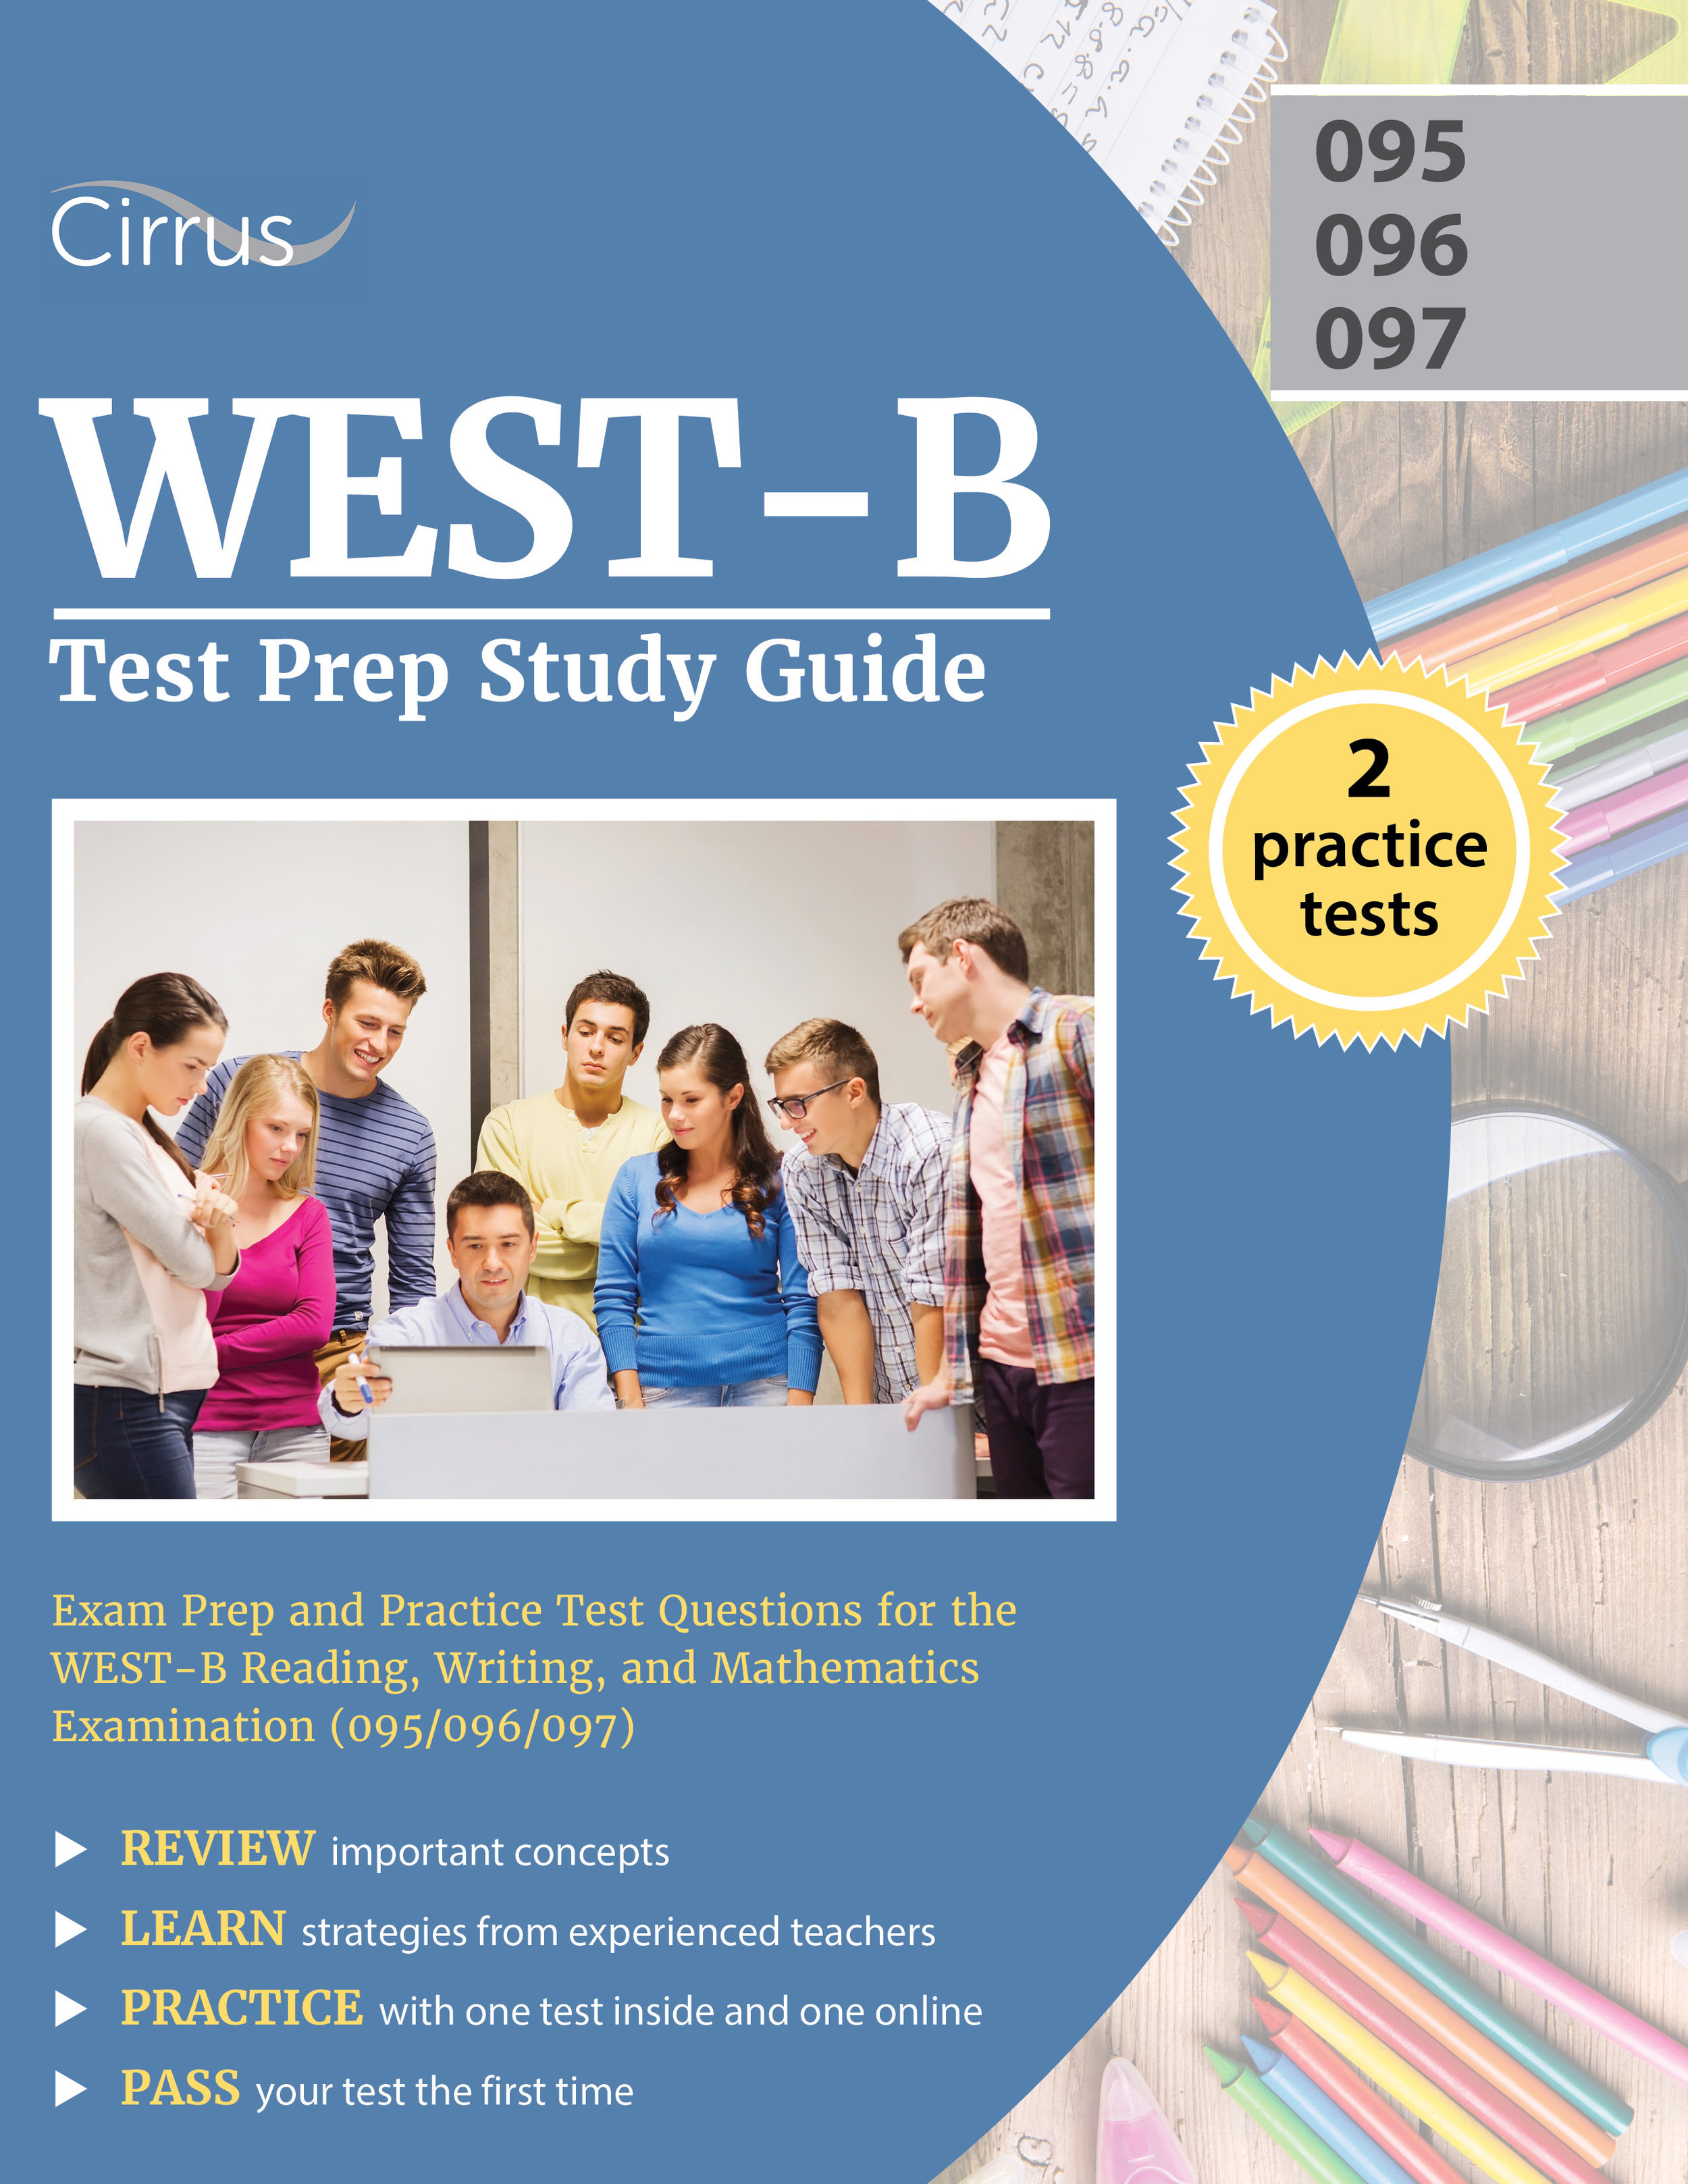 WEST-B Test Prep Study Guide